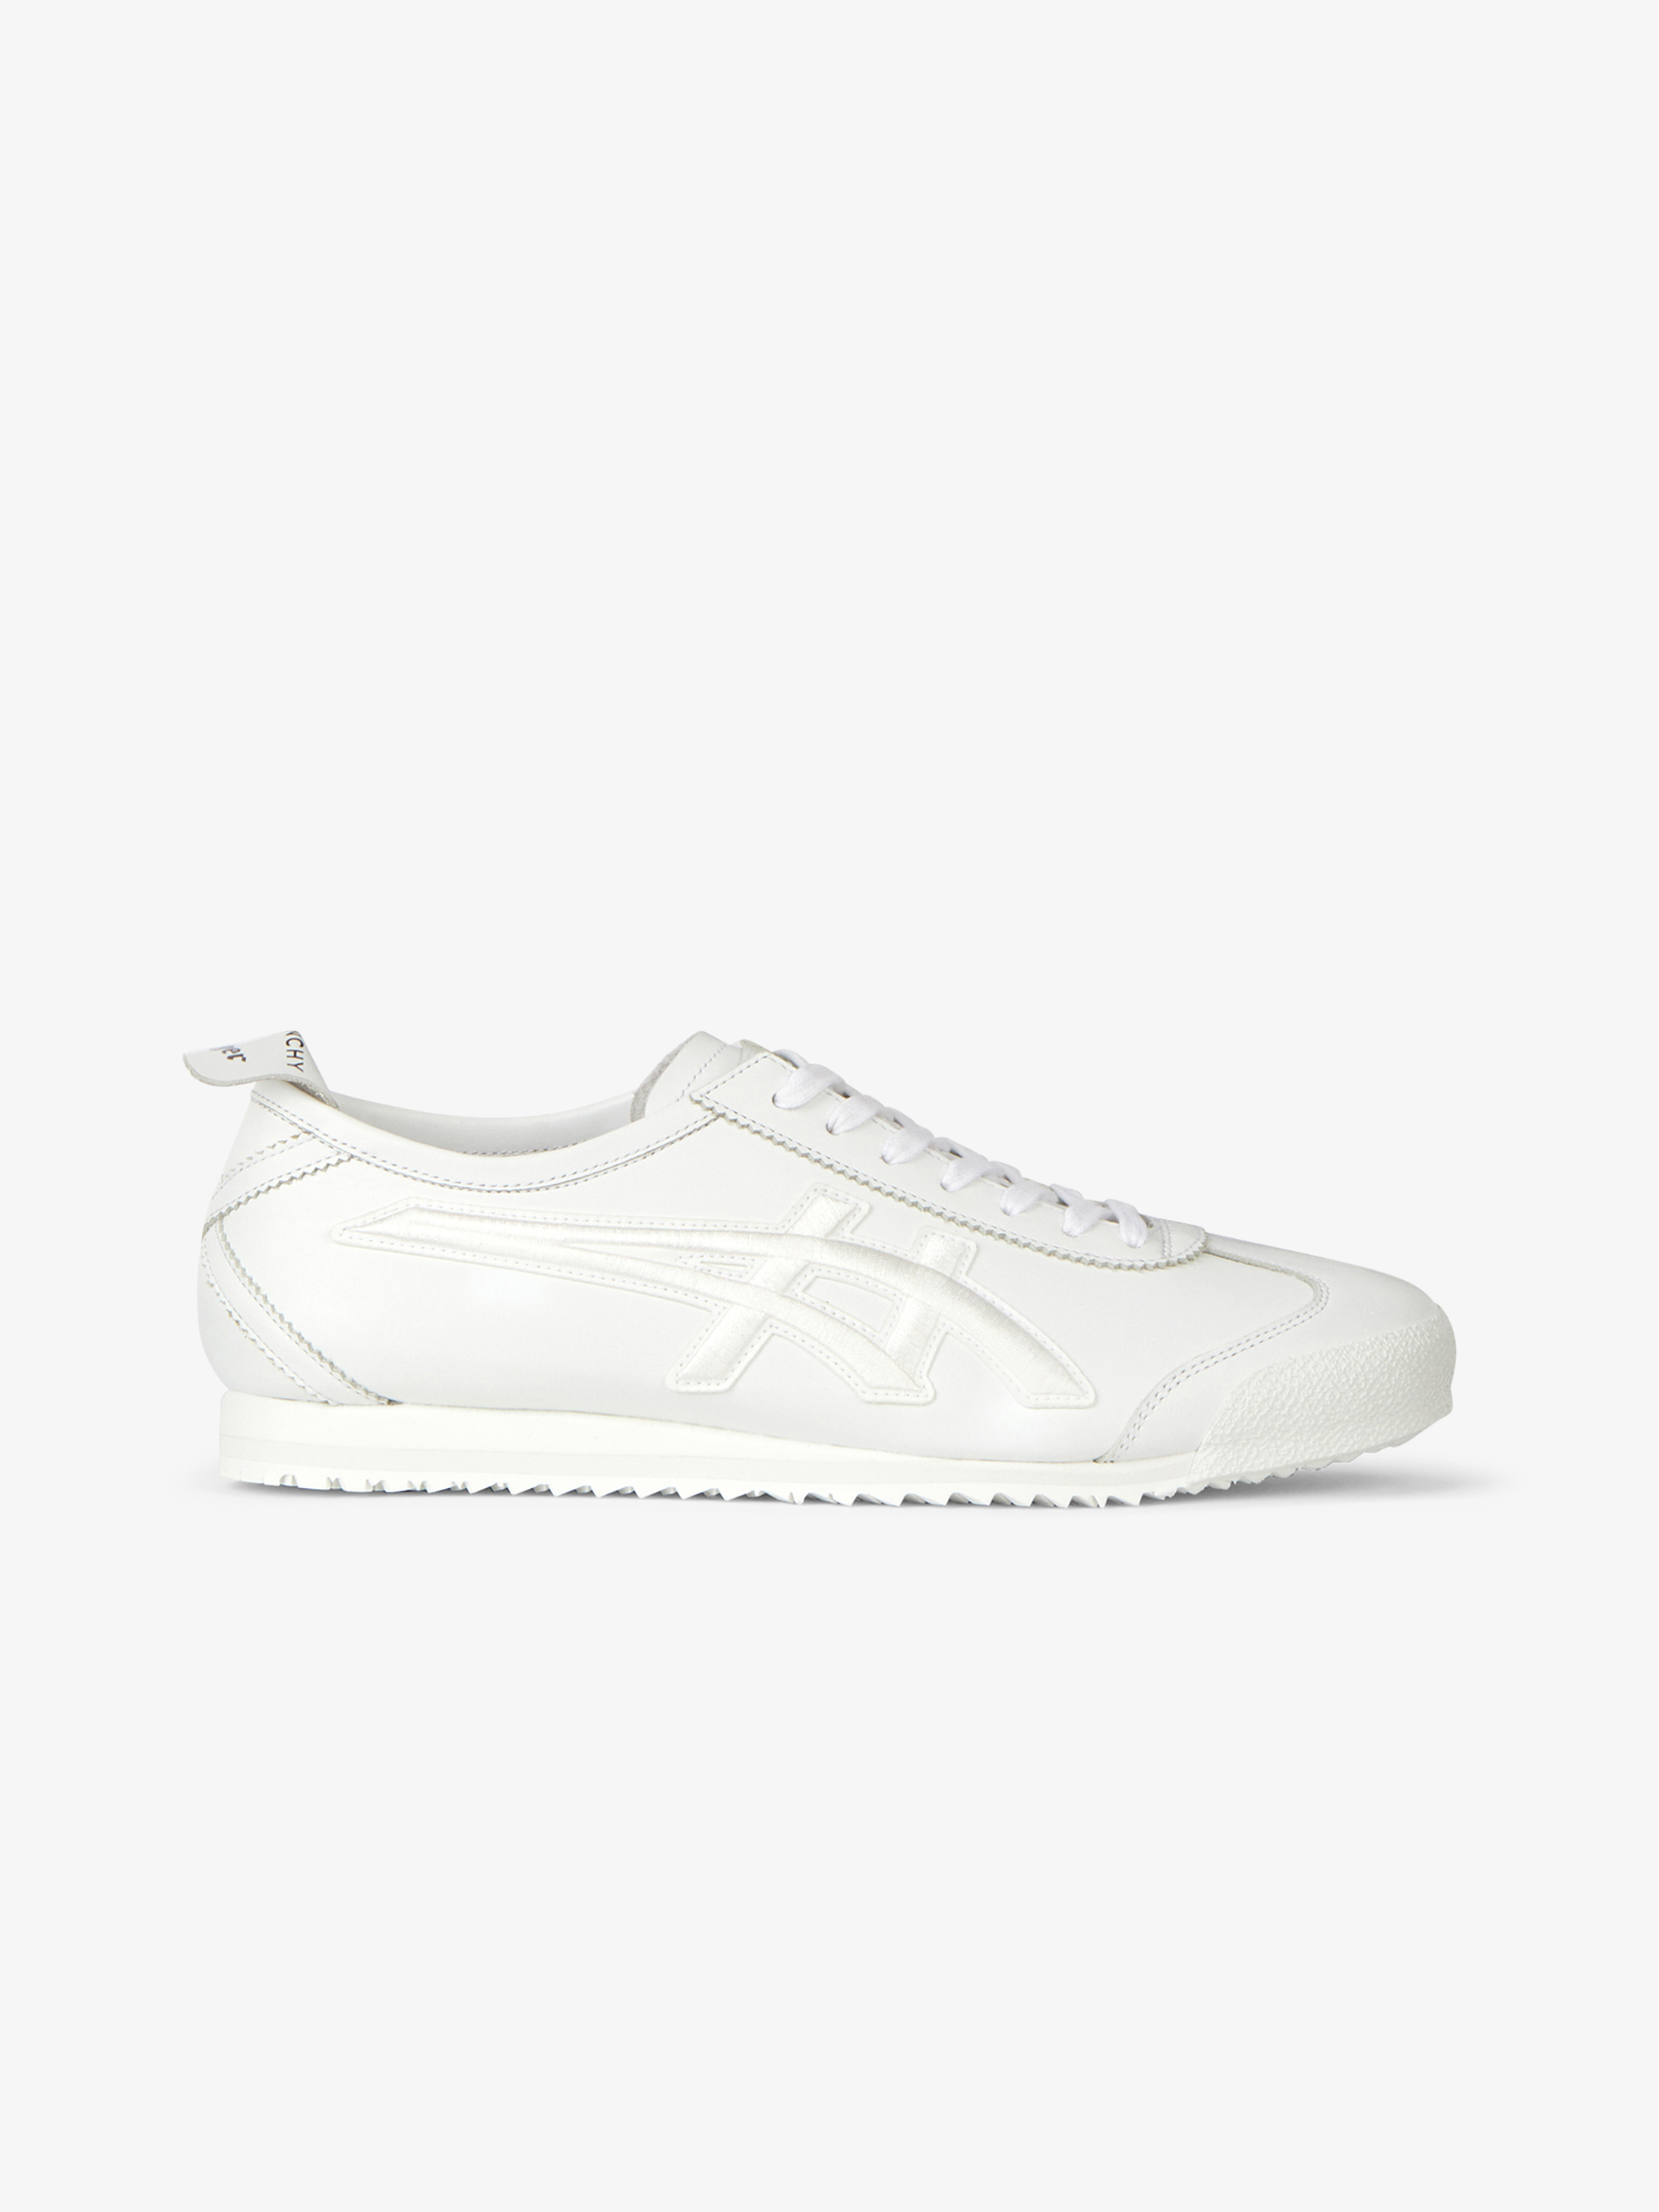 Givenchy x Onitsuka Tiger Men sneakers in leather